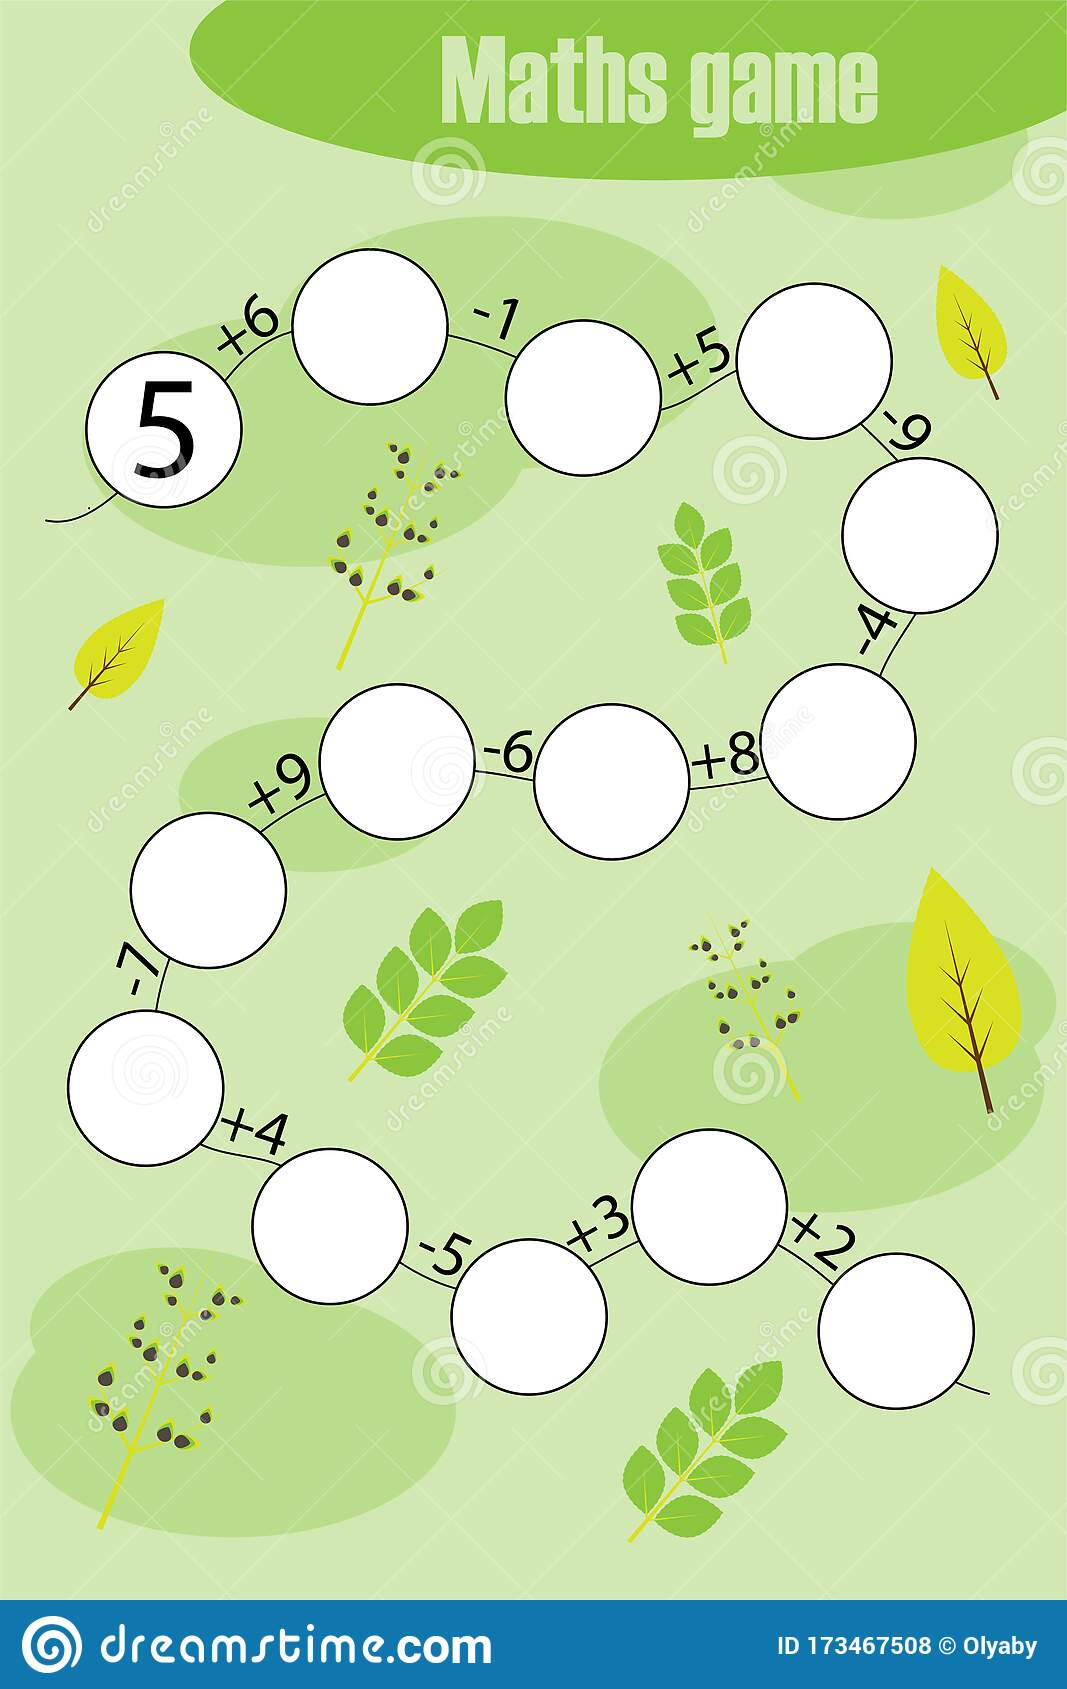 Maths Chain Game With Spring Pictures For Children